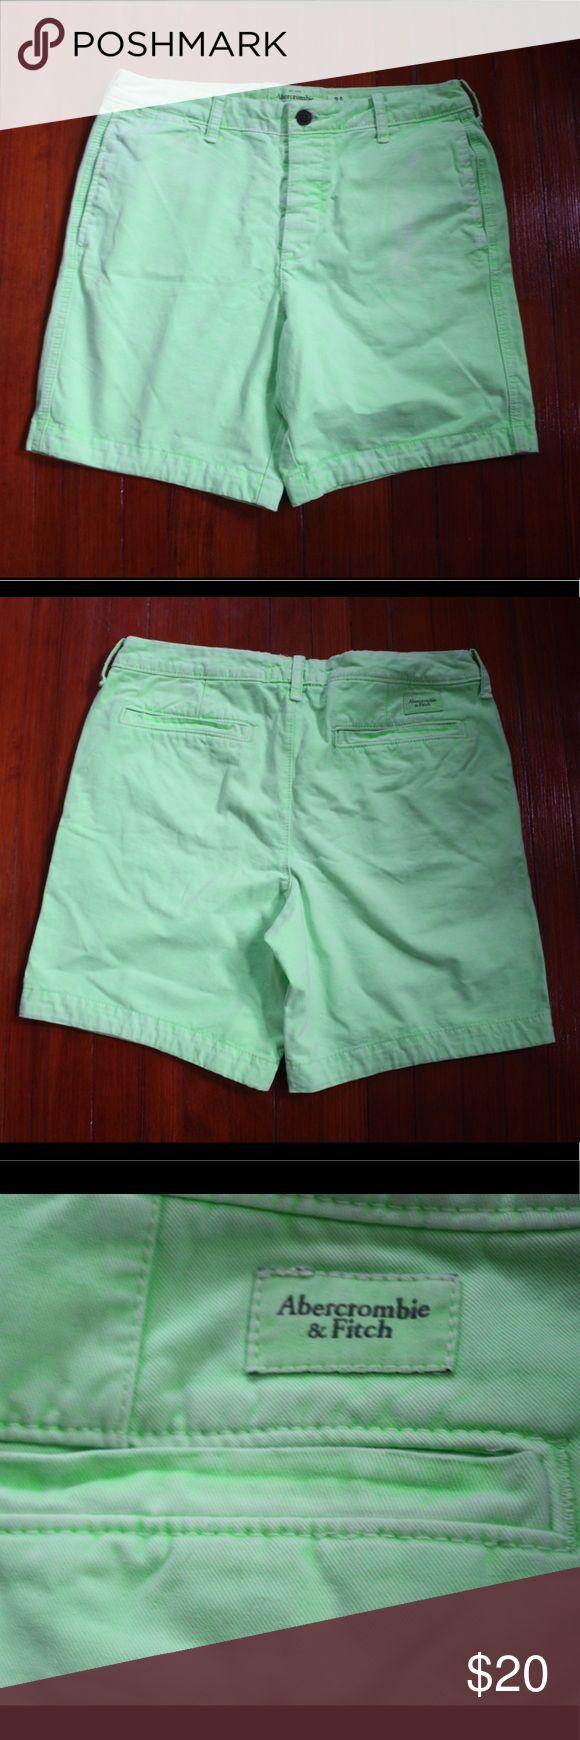 "Abercrombie garment washed Neon green short. This is a pair of Abercrombie garment washed Neon green short. They're a really nice faded neon green and are super soft and comfortable. Variation in the wear of the shorts are due to the garment wash process so they look like your favorite pair of shorts worn over and over again! They have a 7"" inseam so they hit right above the knee. Great condition. No stains or holes or tears! Abercrombie & Fitch Shorts Flat Front"